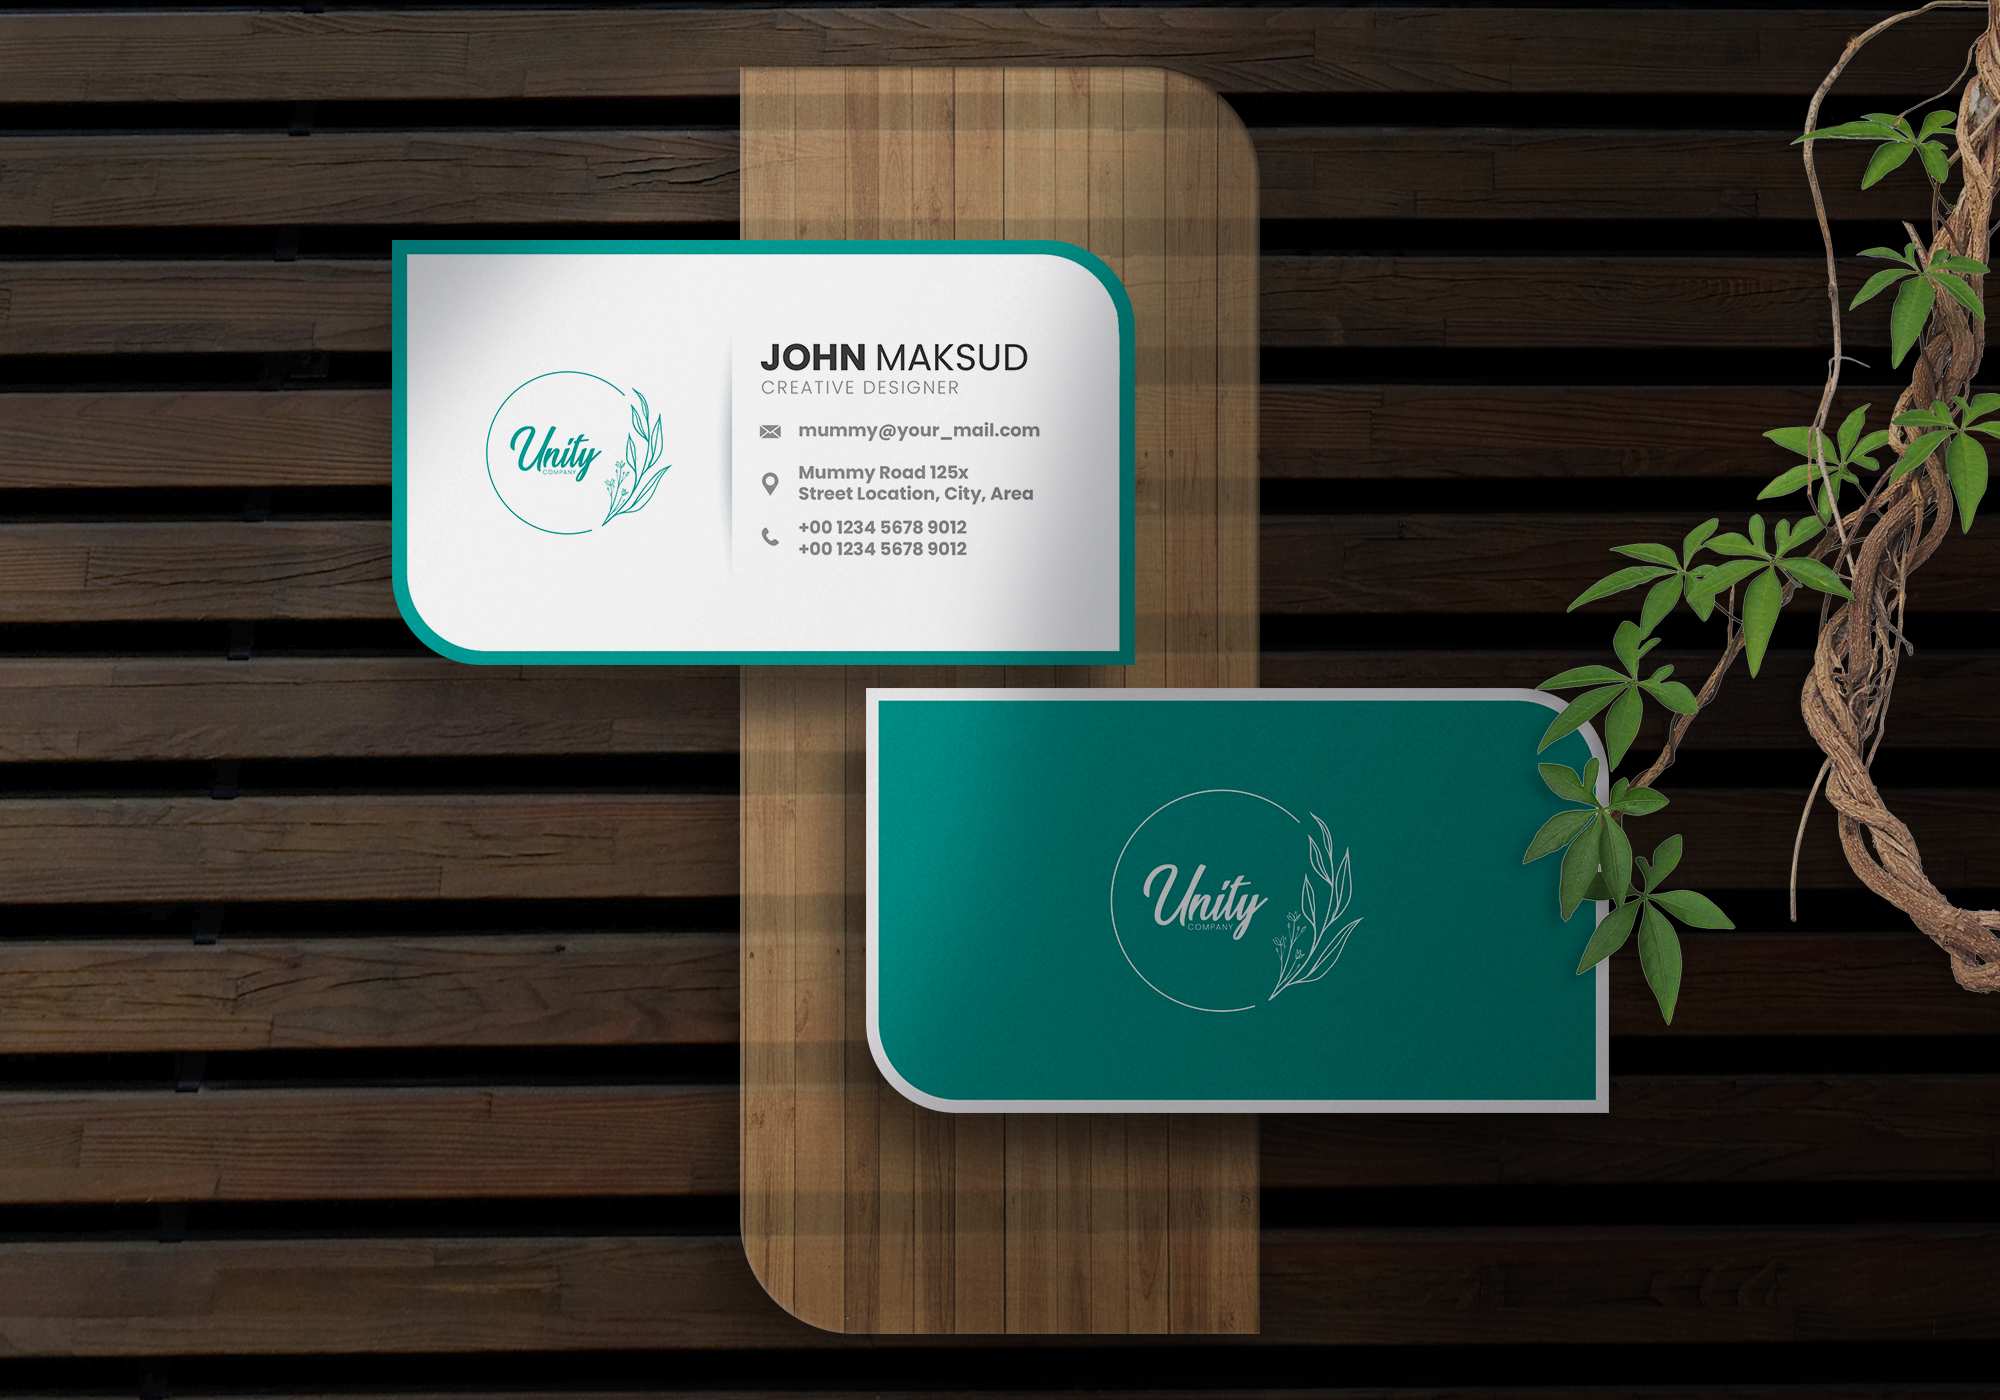 I will create a minimalist and modern logo,  business card,  letterhead design